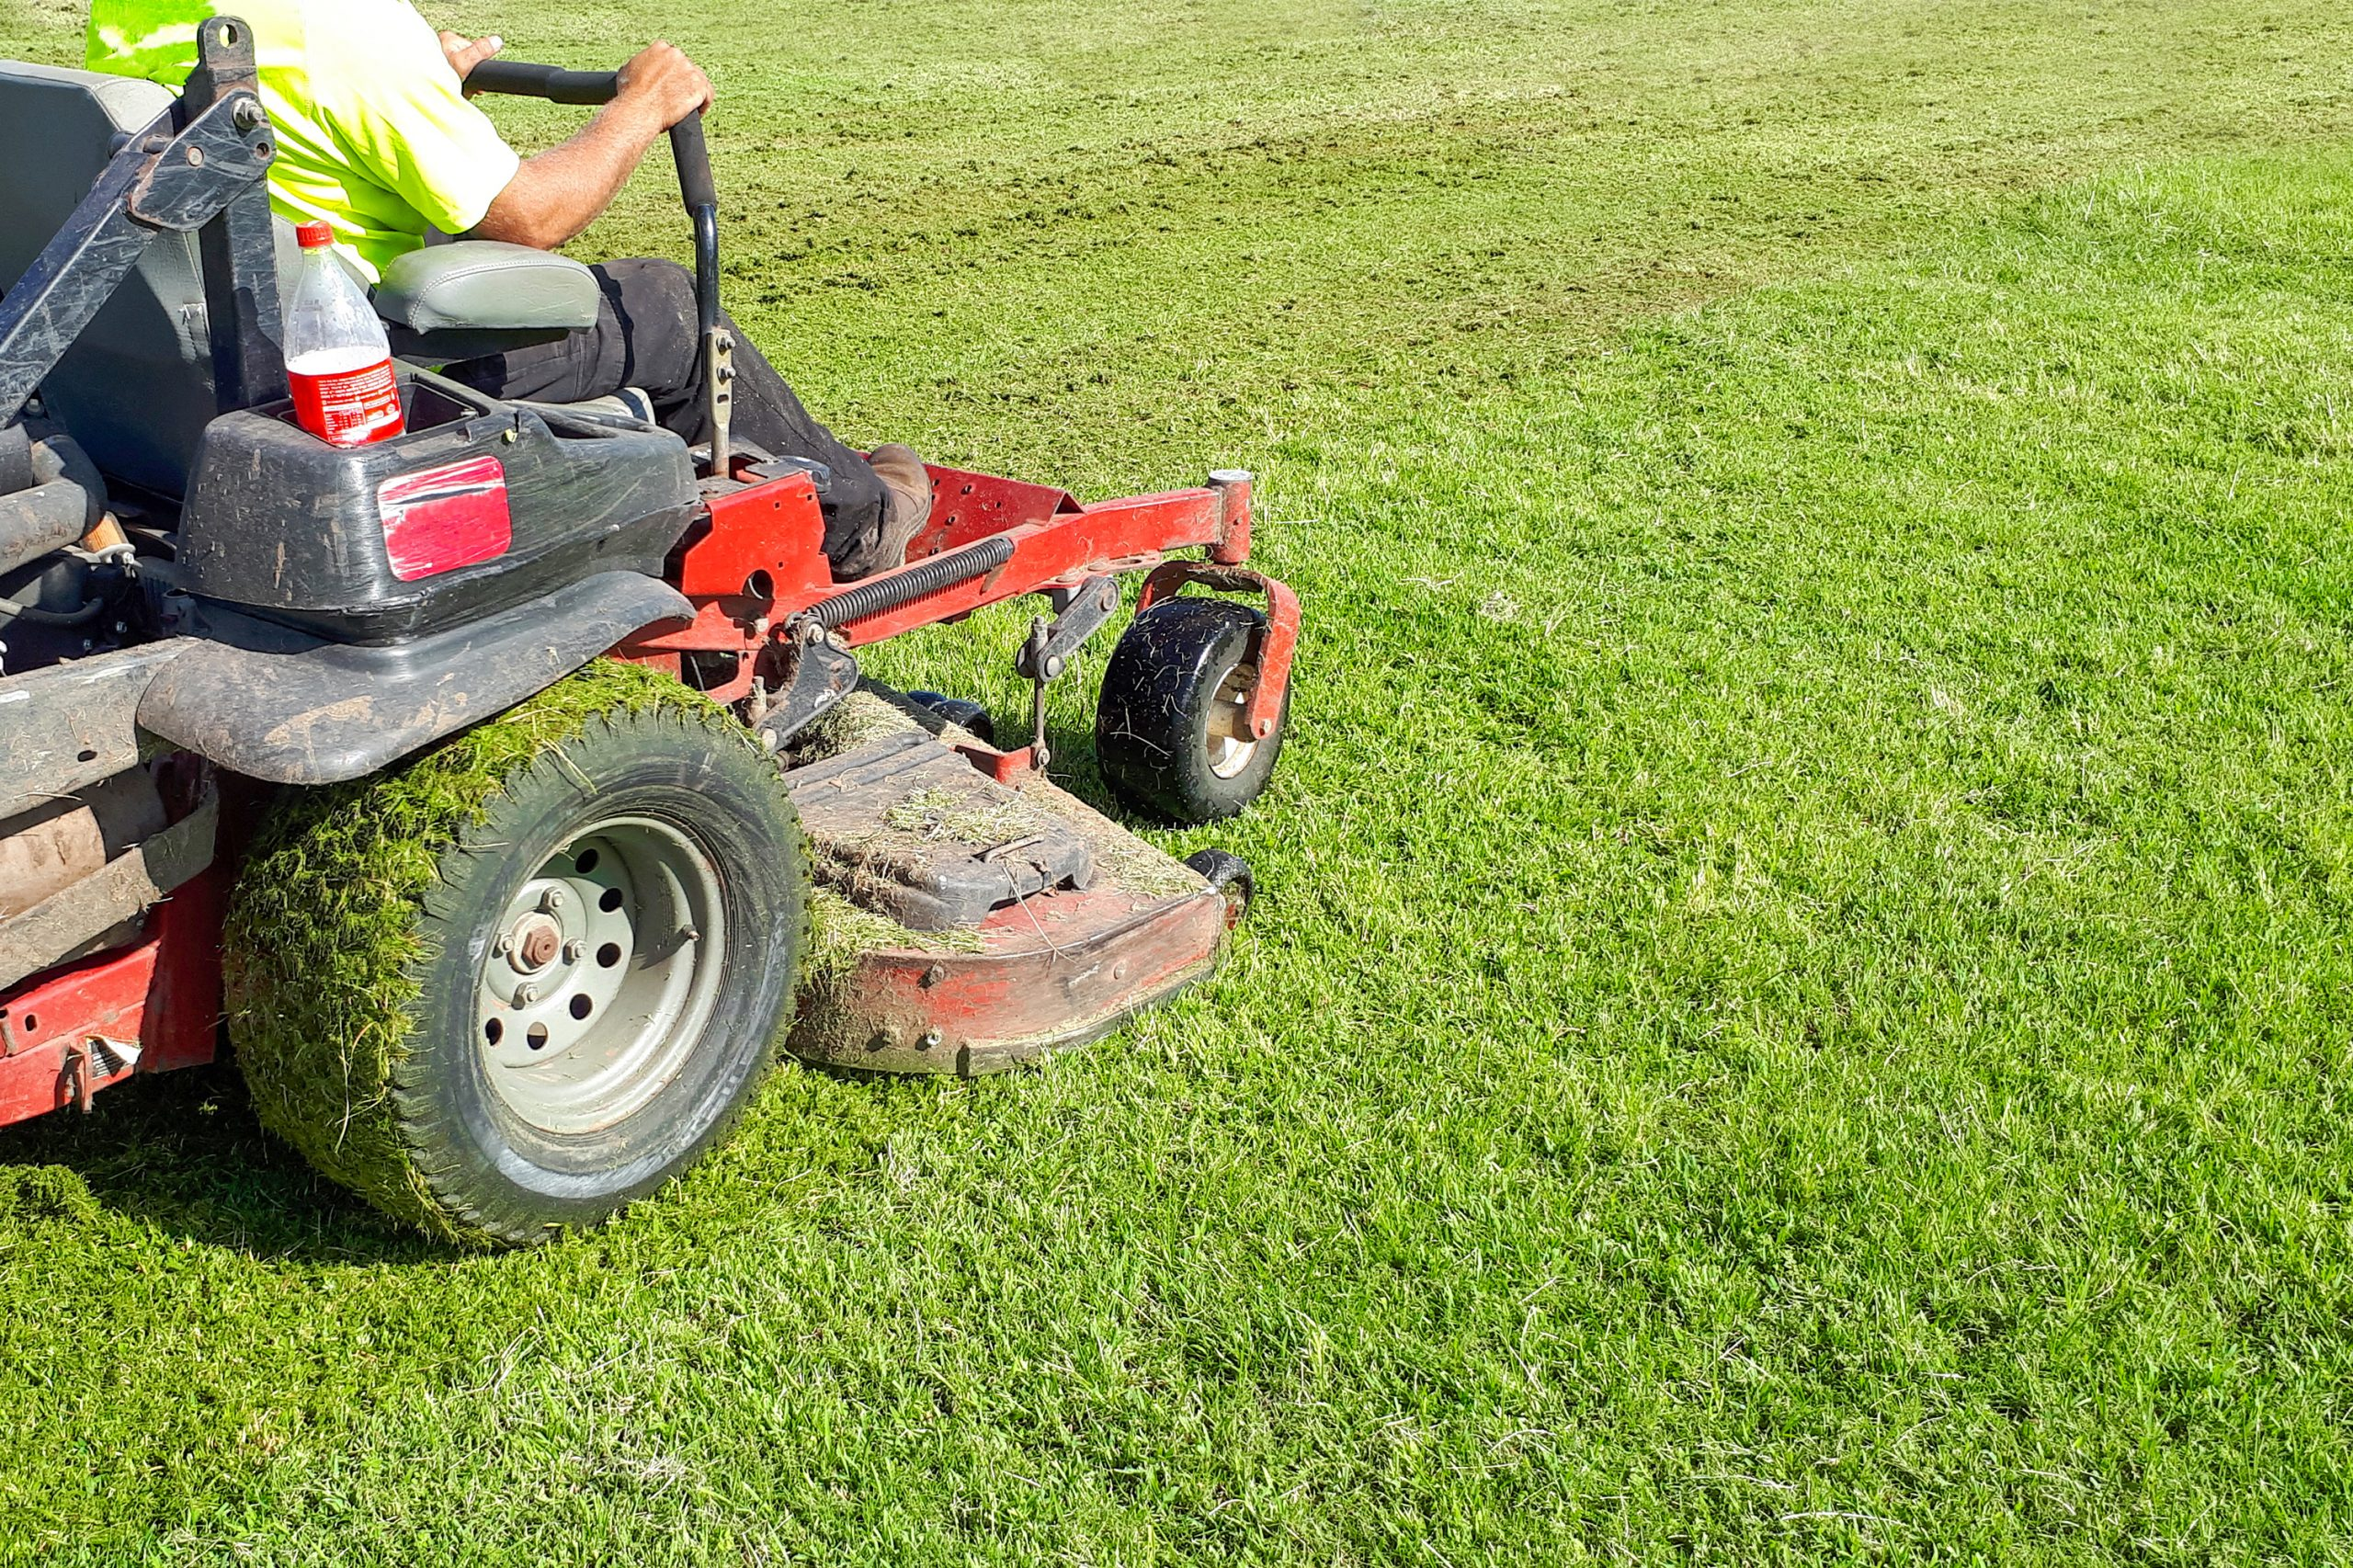 What To Look For When Buying A Zero Turn Mower For Senior Citizens